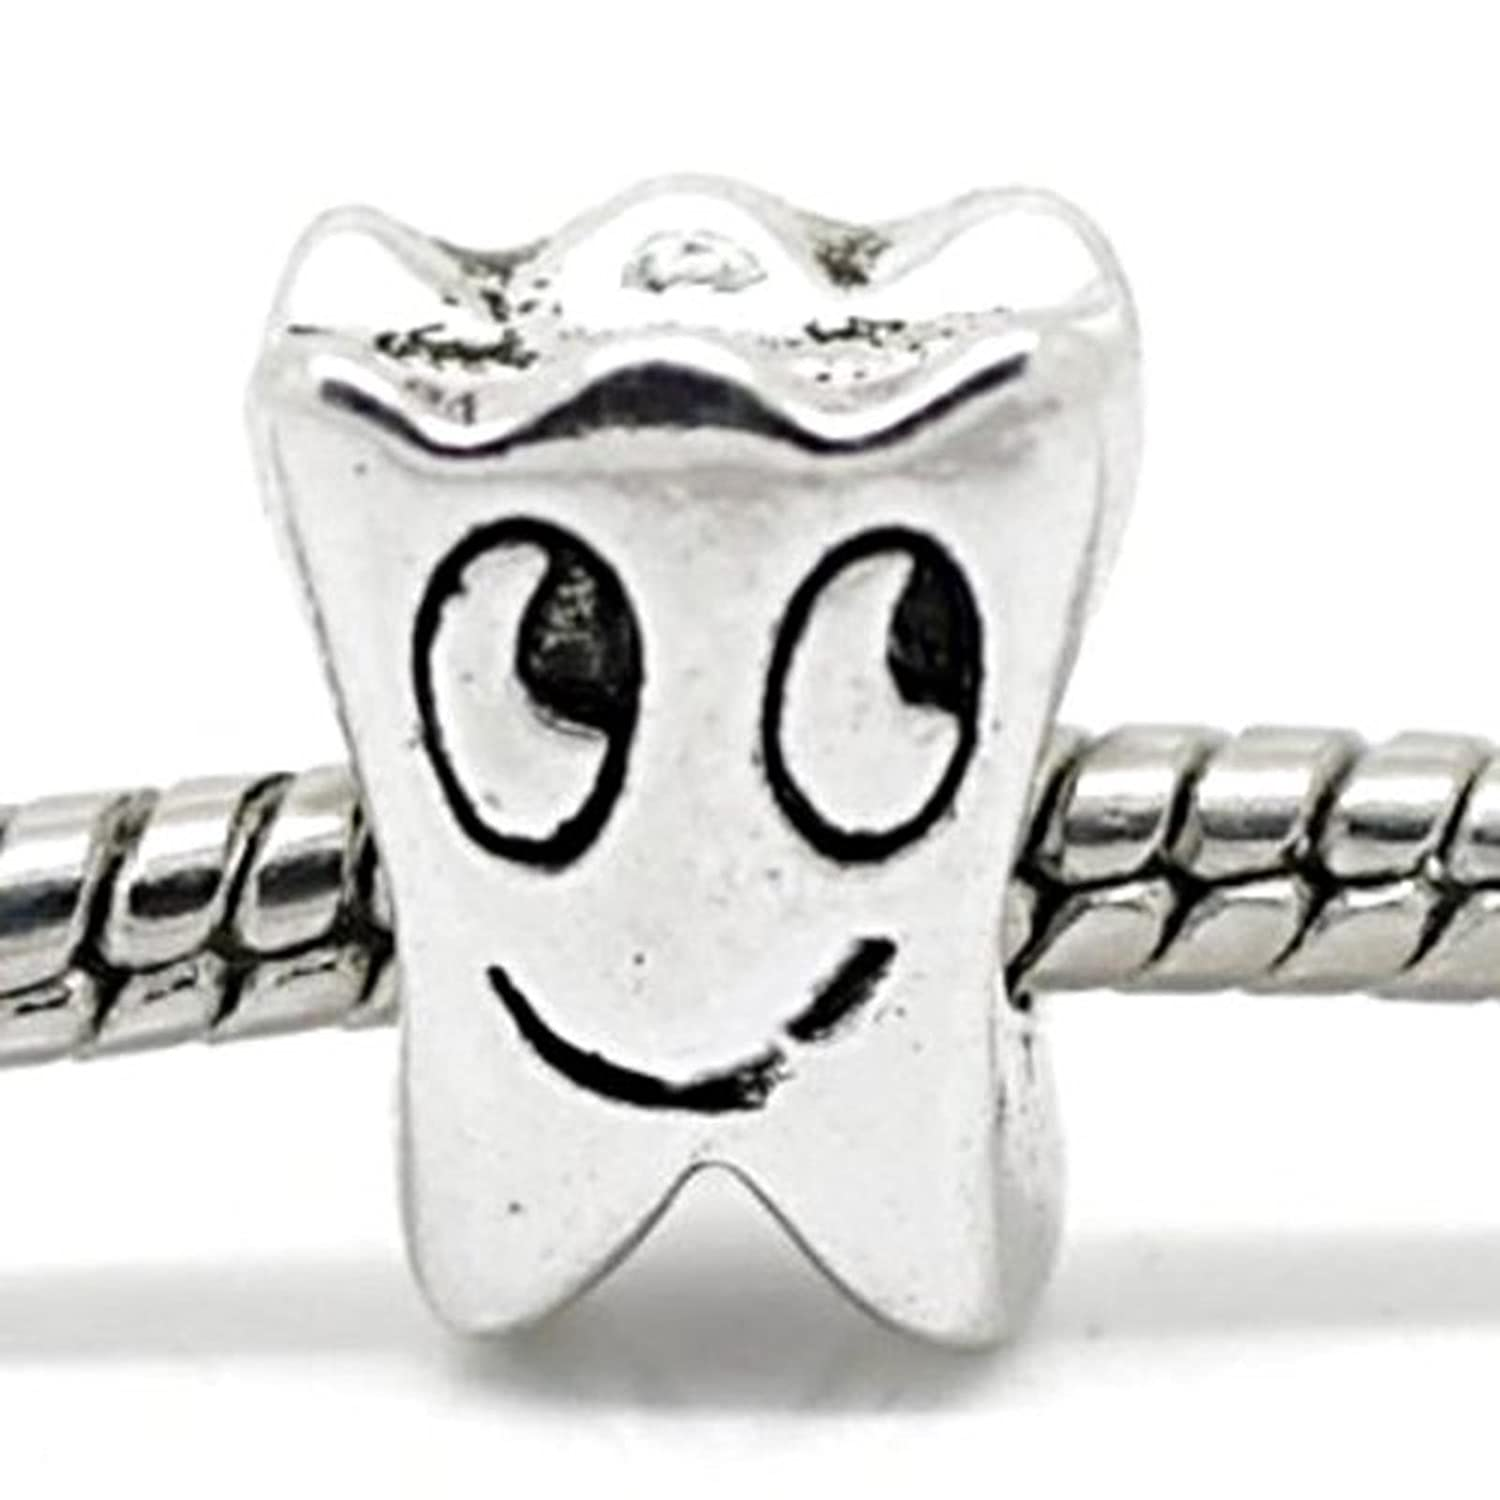 082804008 Amazon.com: Charm Buddy Tooth Fairy Charms Bead Fit Silver Pandora Style  Bracelets: Jewelry